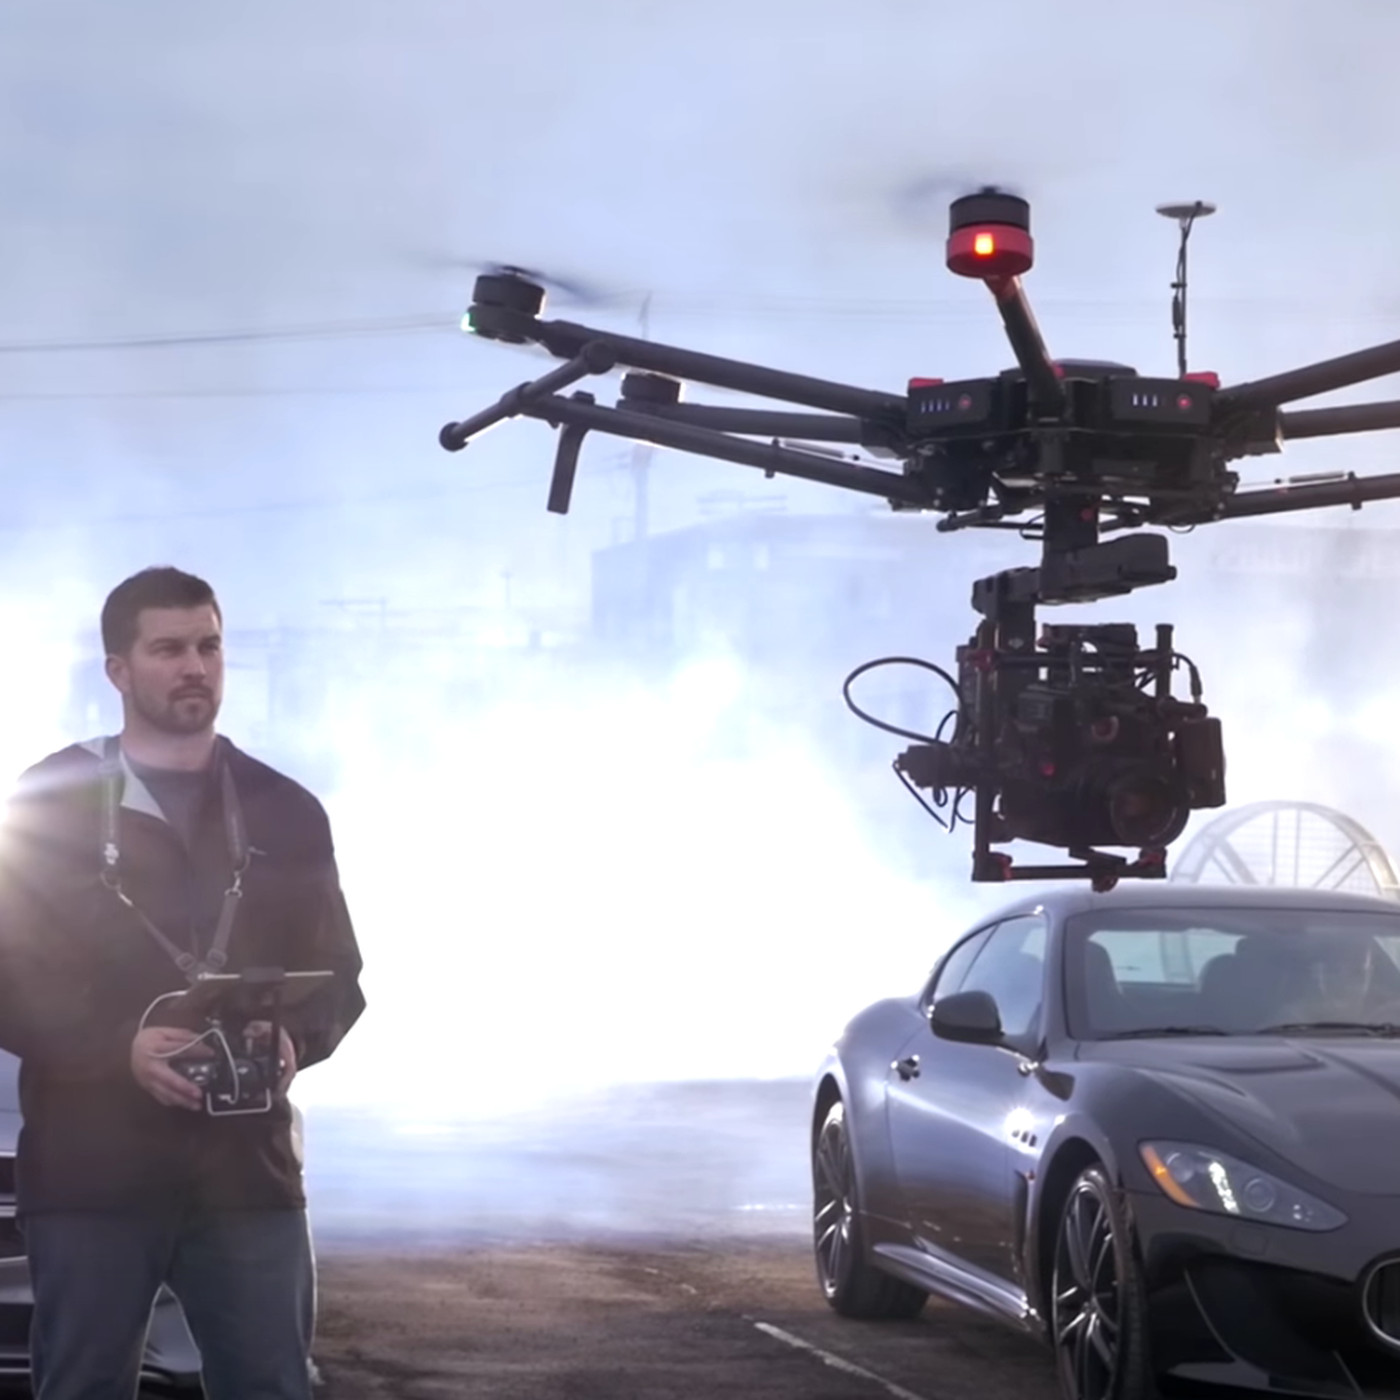 DJI Just Released Its Most Powerful Drone Yet